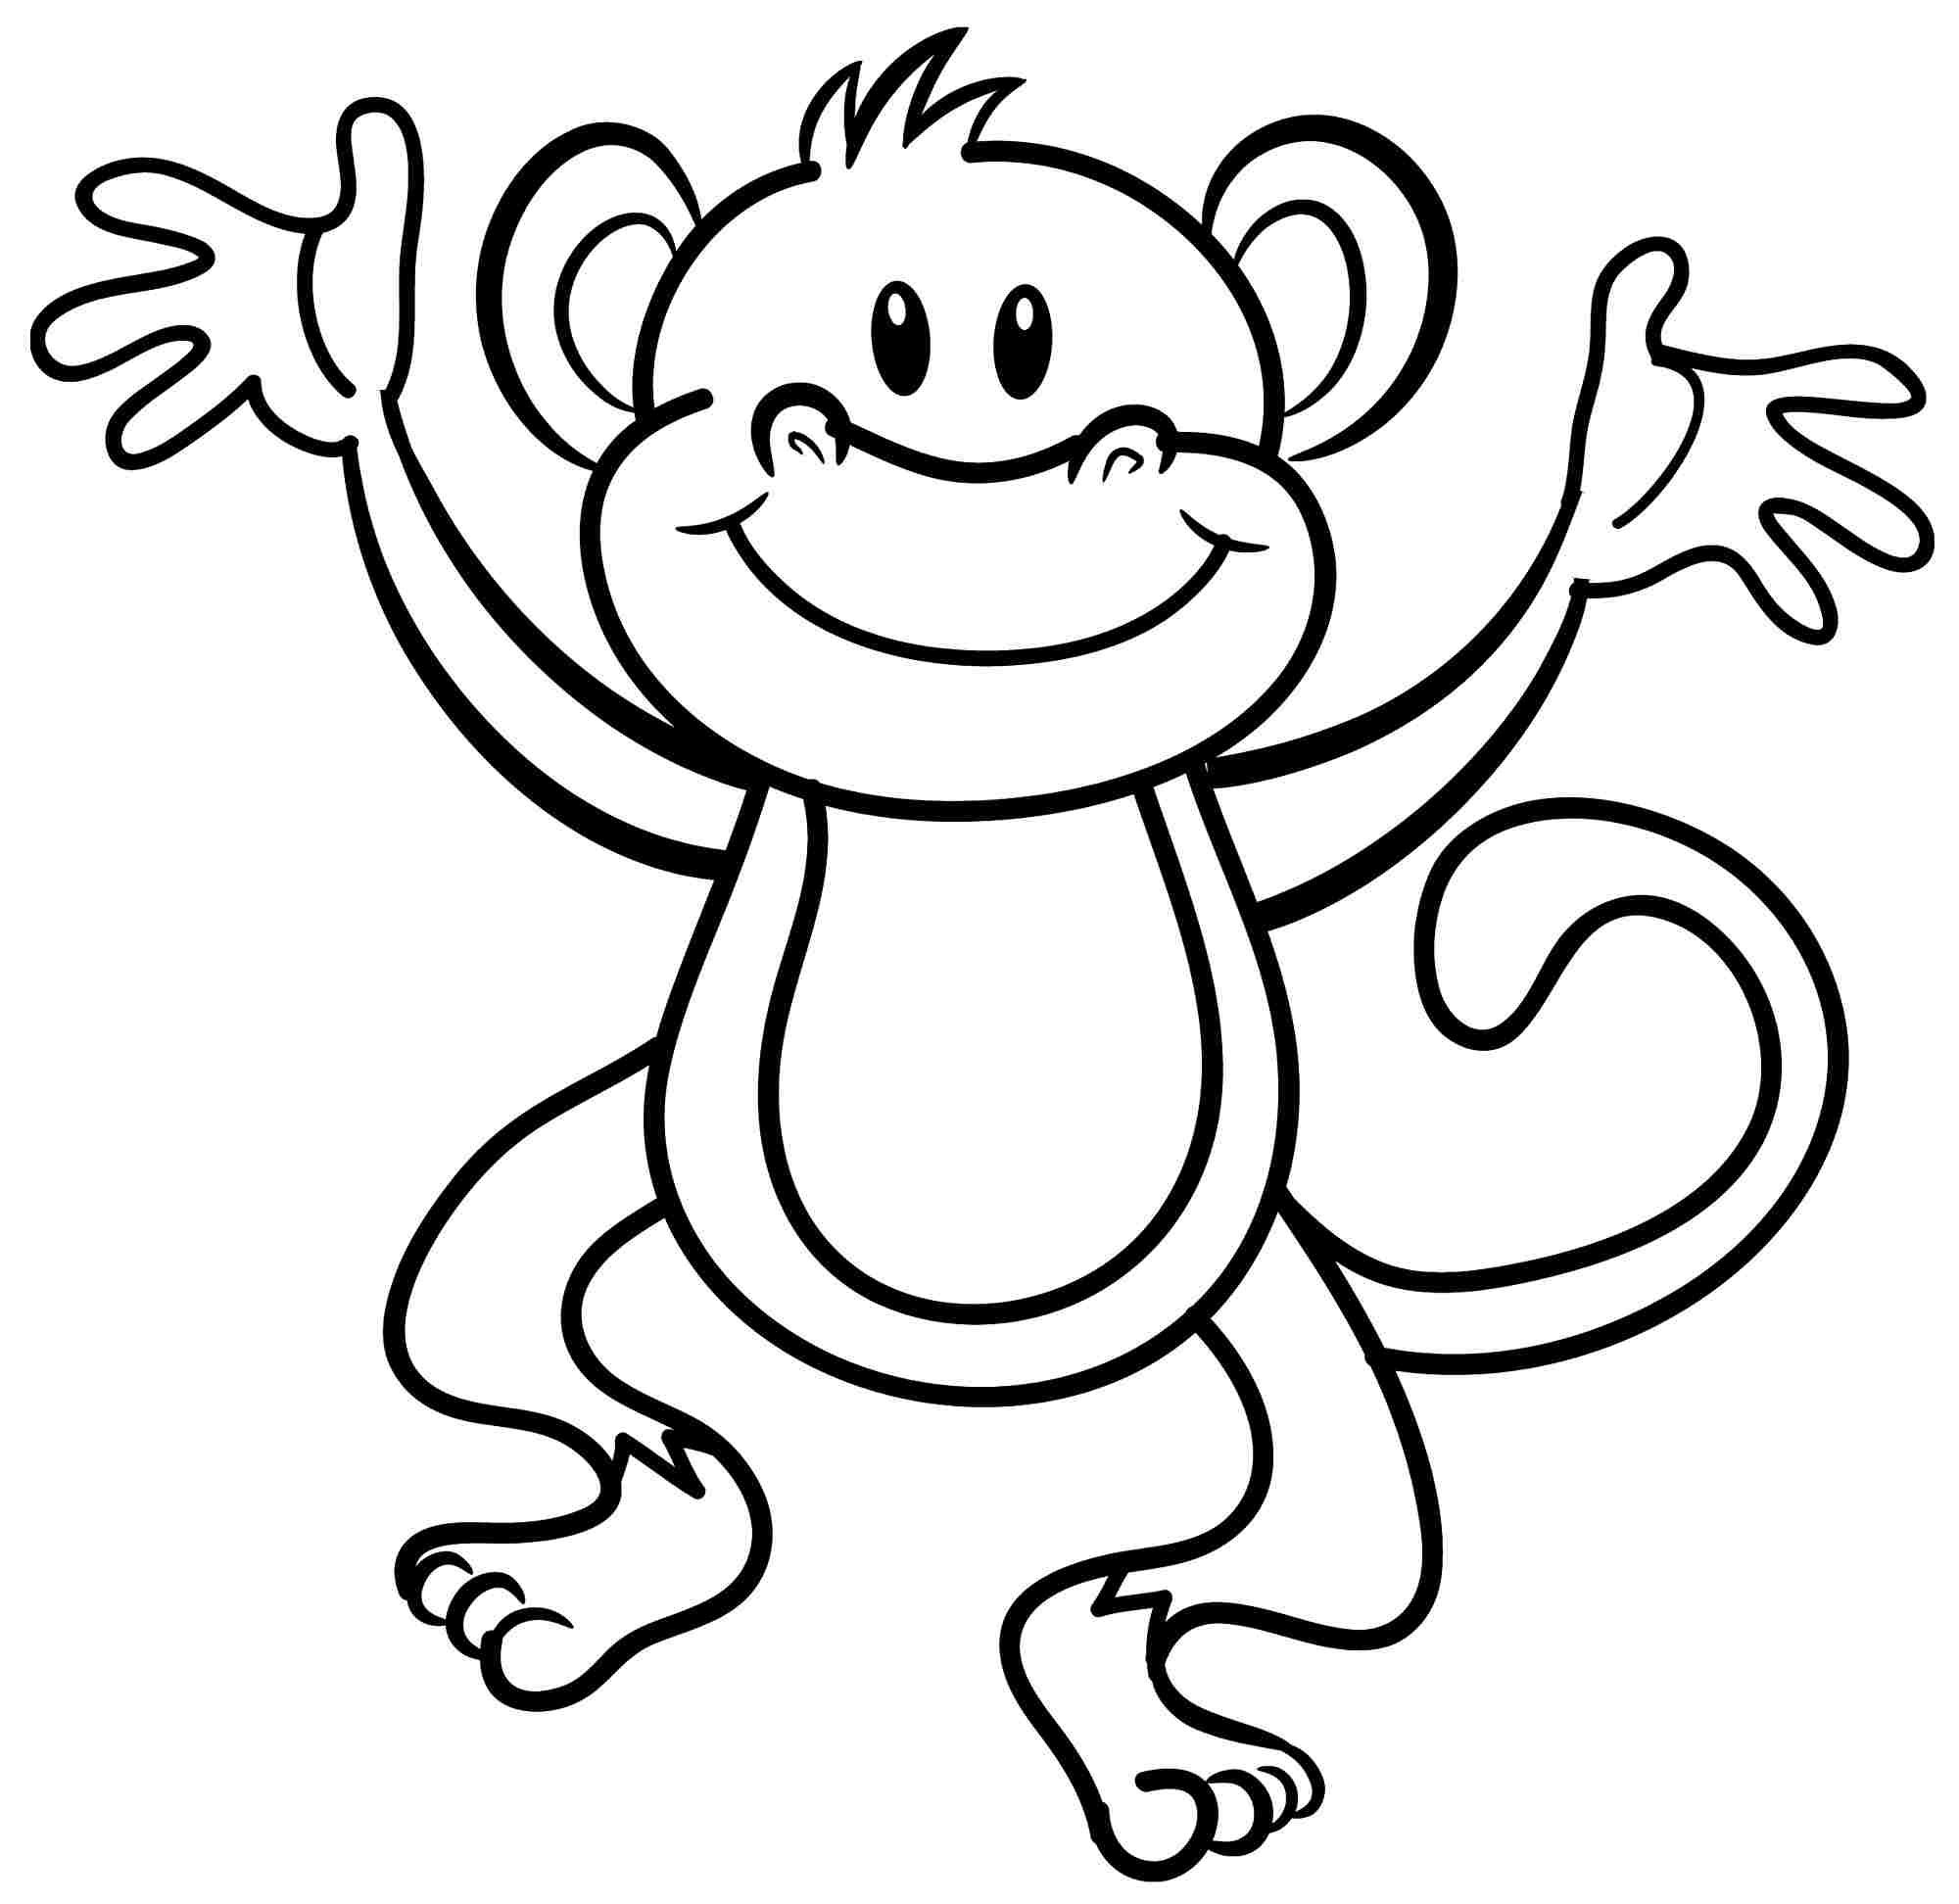 2000x1944 Jungle Animals Coloring Pages For Toddlers Shapes Pdf Zoo